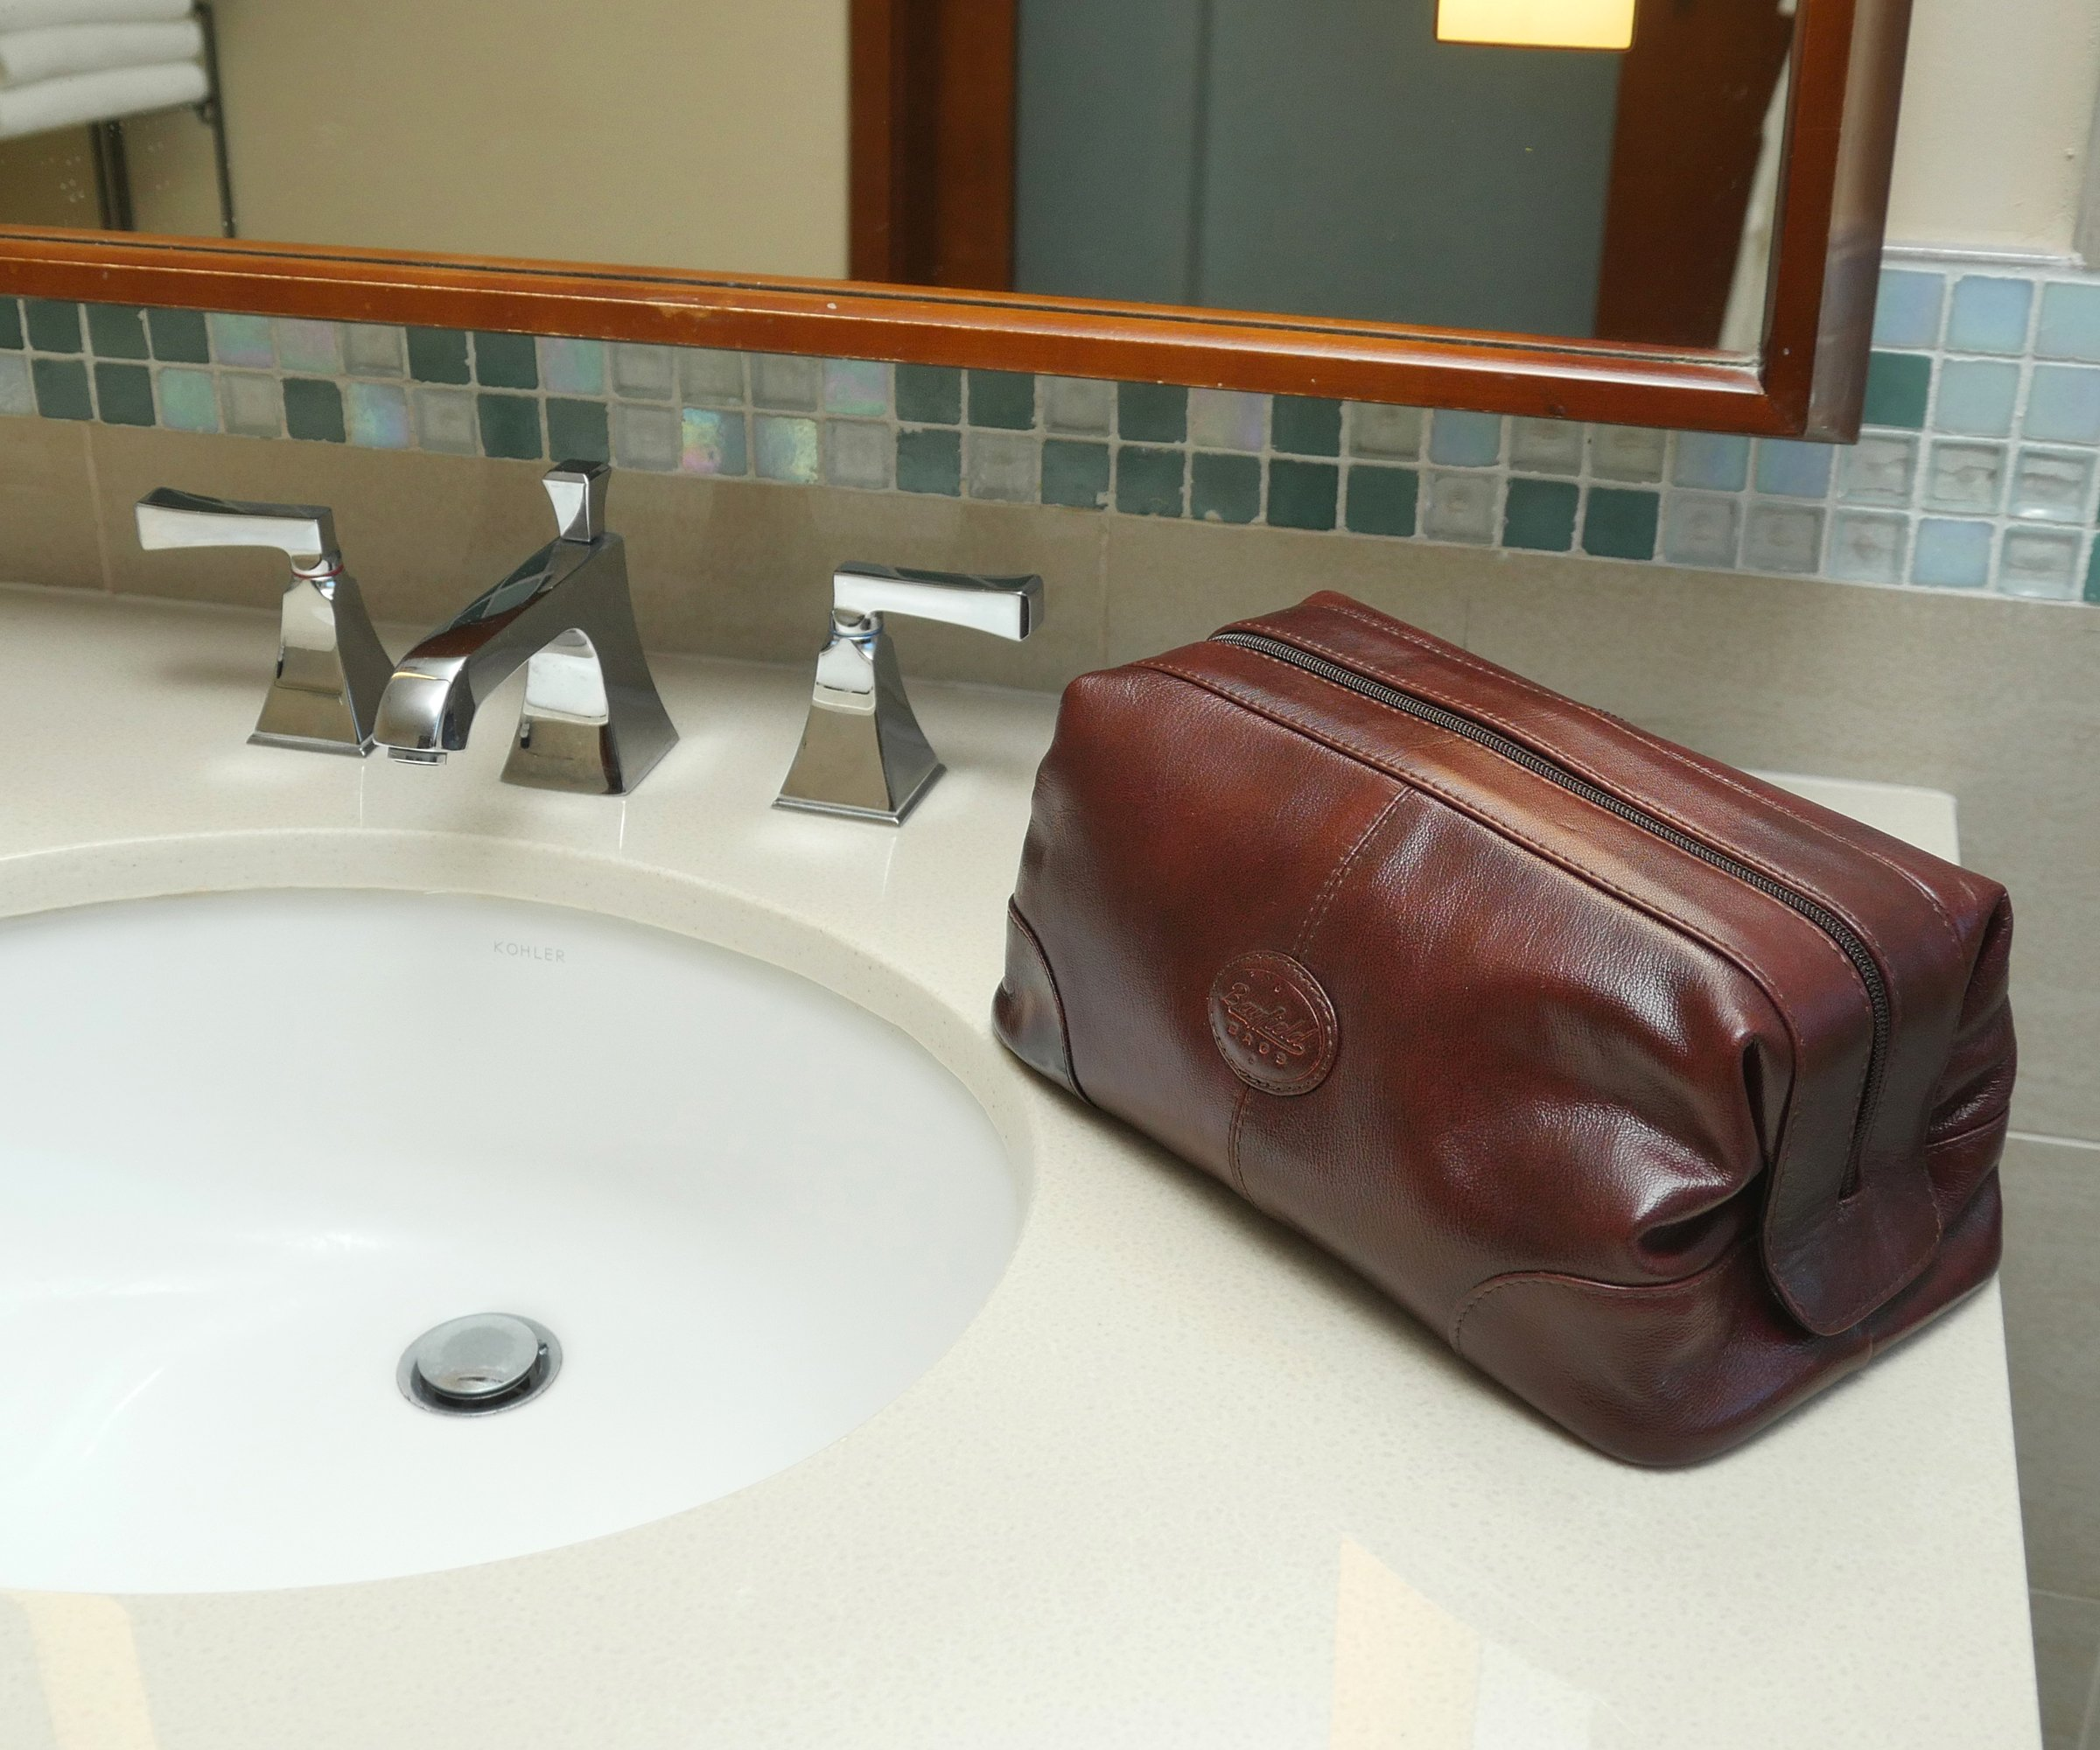 98916a43f85 Mens Toiletry Bag Dopp Kit by Bayfeild Bags-Small Glossy Leather Vintage  Shave Kit Travel Medicine Bag (10x5x5) (burgundy)